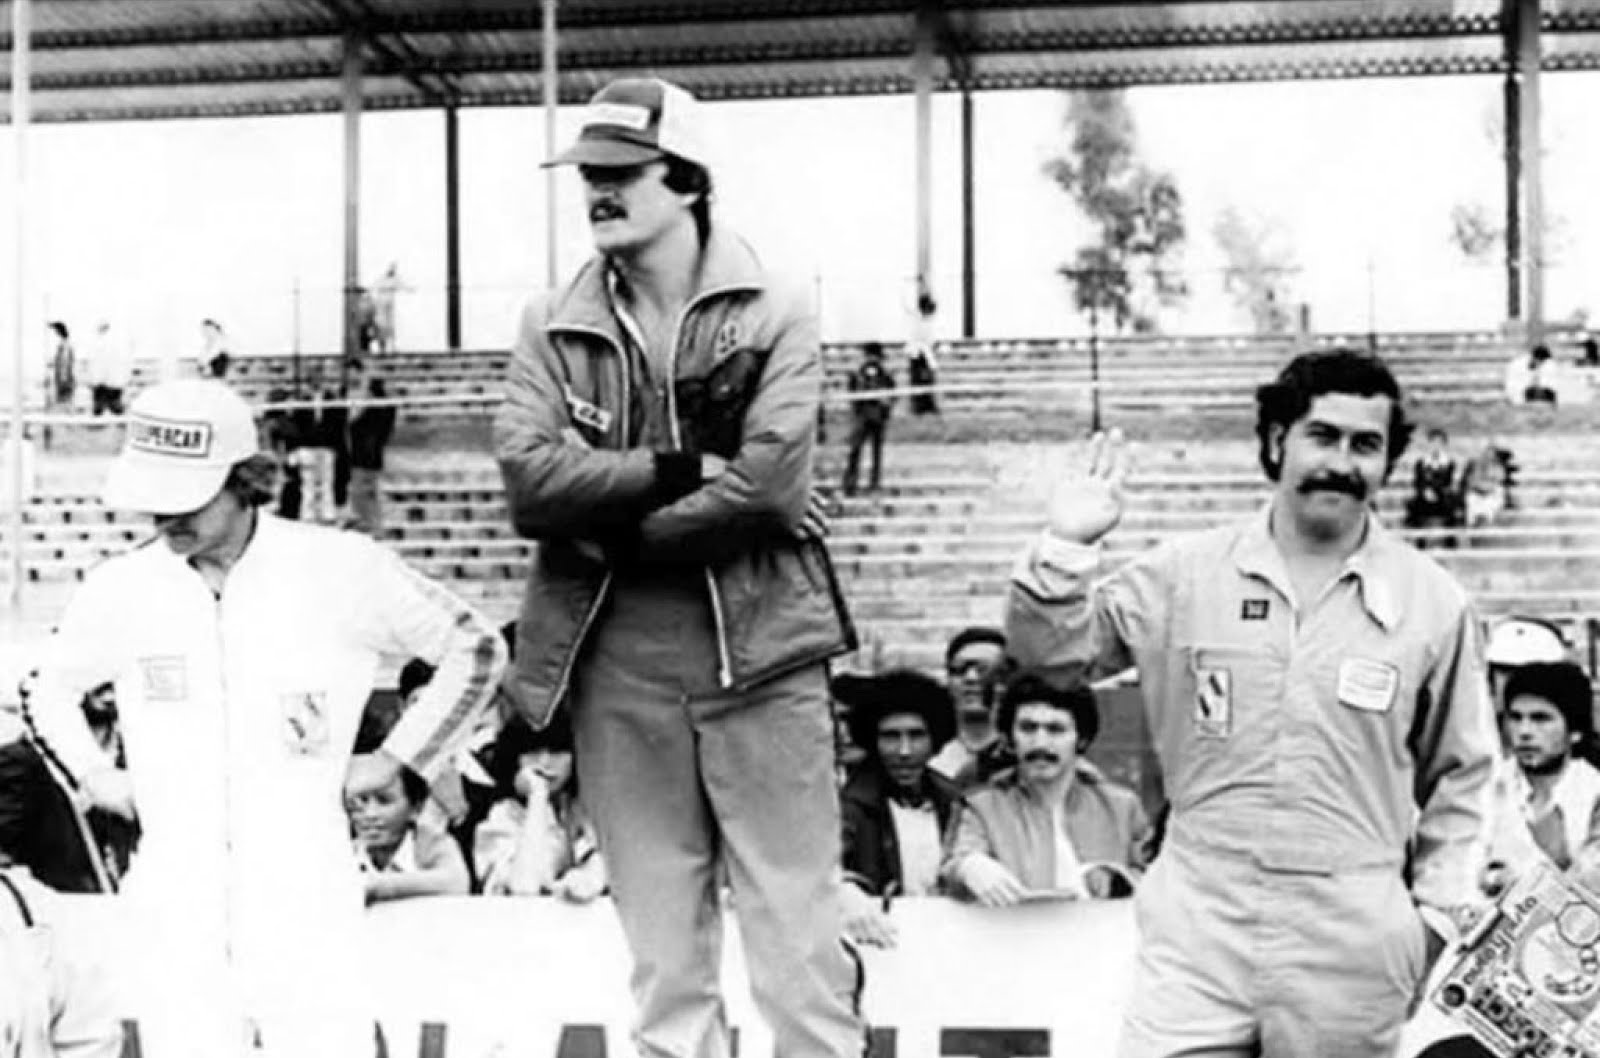 axis of oversteer the racing career of pablo escobar escobar turned up at the race four cars one each for himself and his cousin gustavo gaviria and two spares racing that day were also his narco